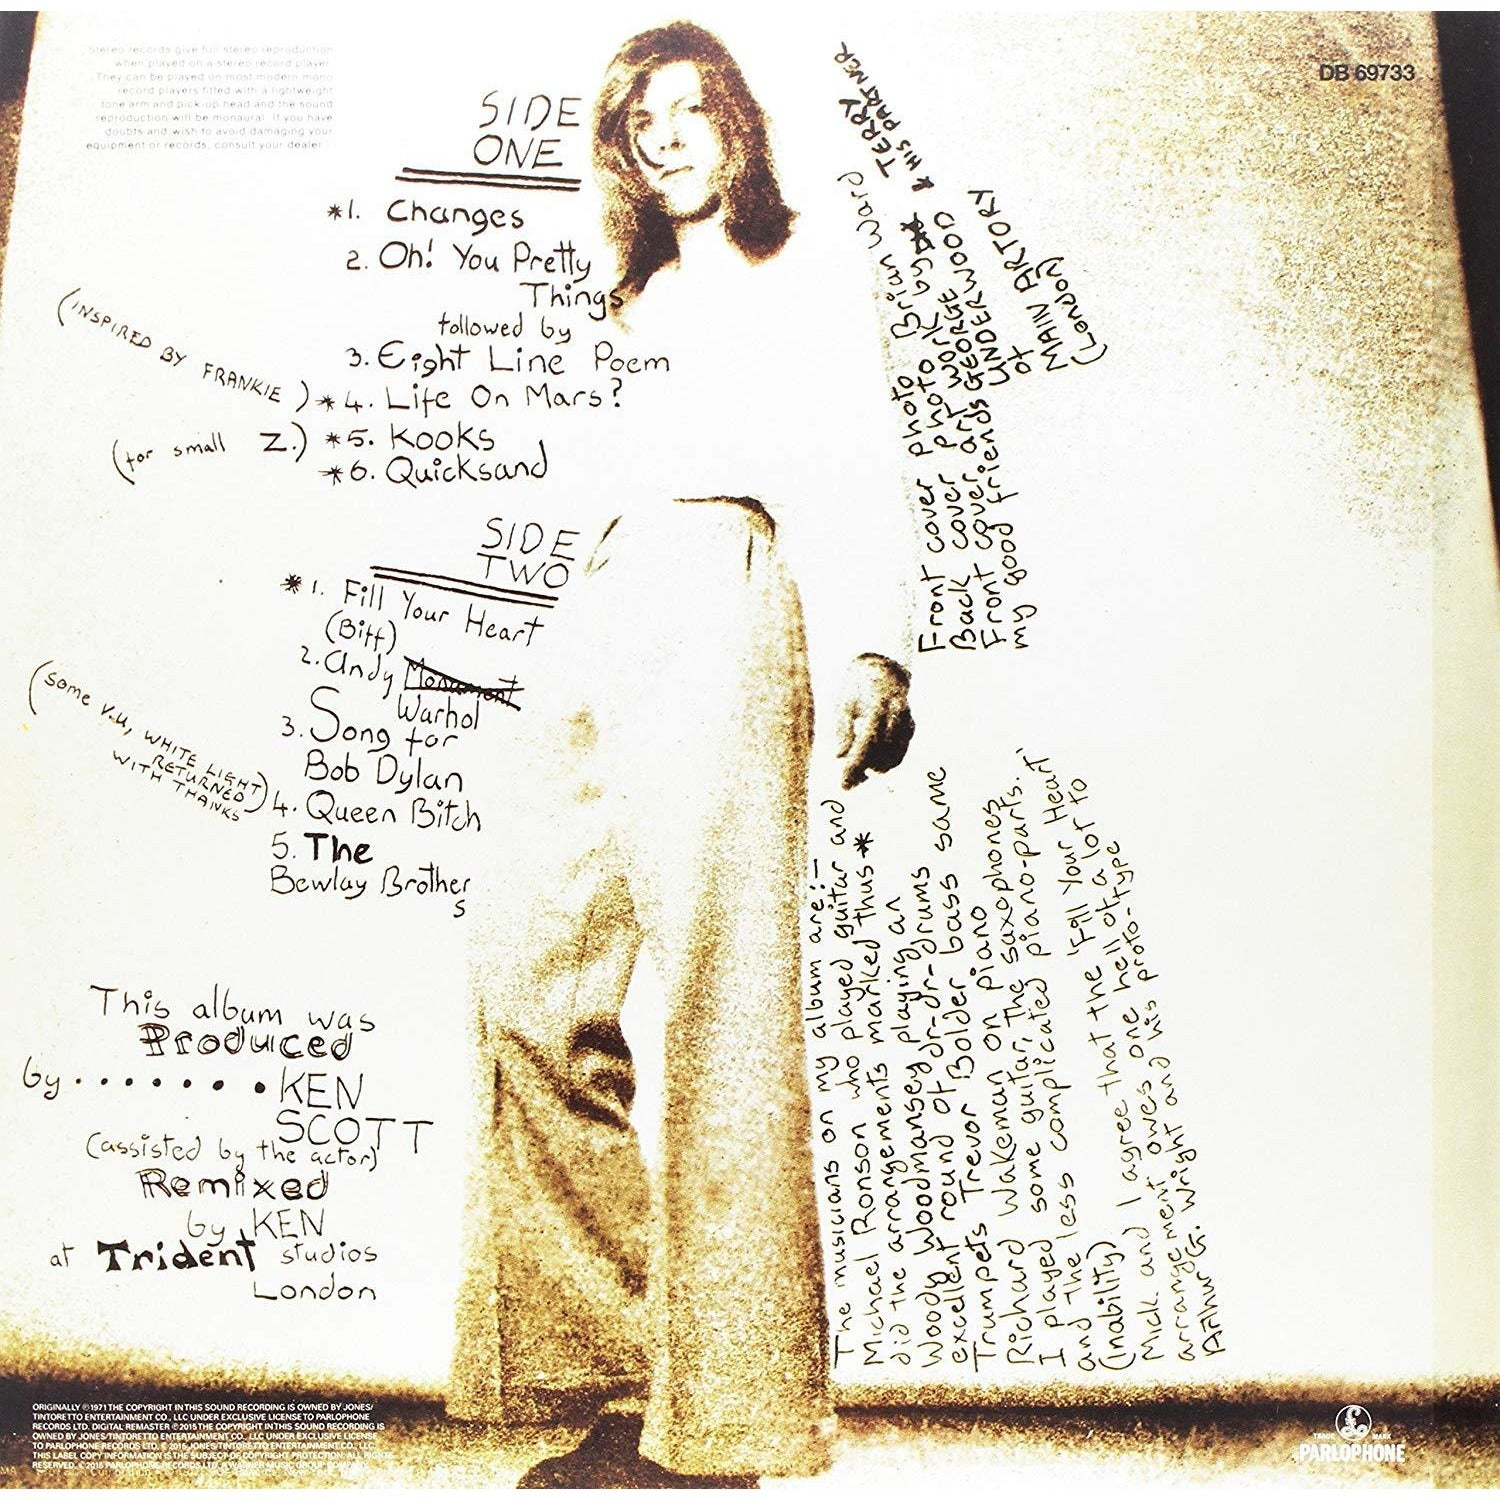 HUNKY DORY (2015 REMASTERED VERSION) (VINYL) LIMITED EDITION, ORIGINAL RECORDING REMASTERED - Vinyl Sound